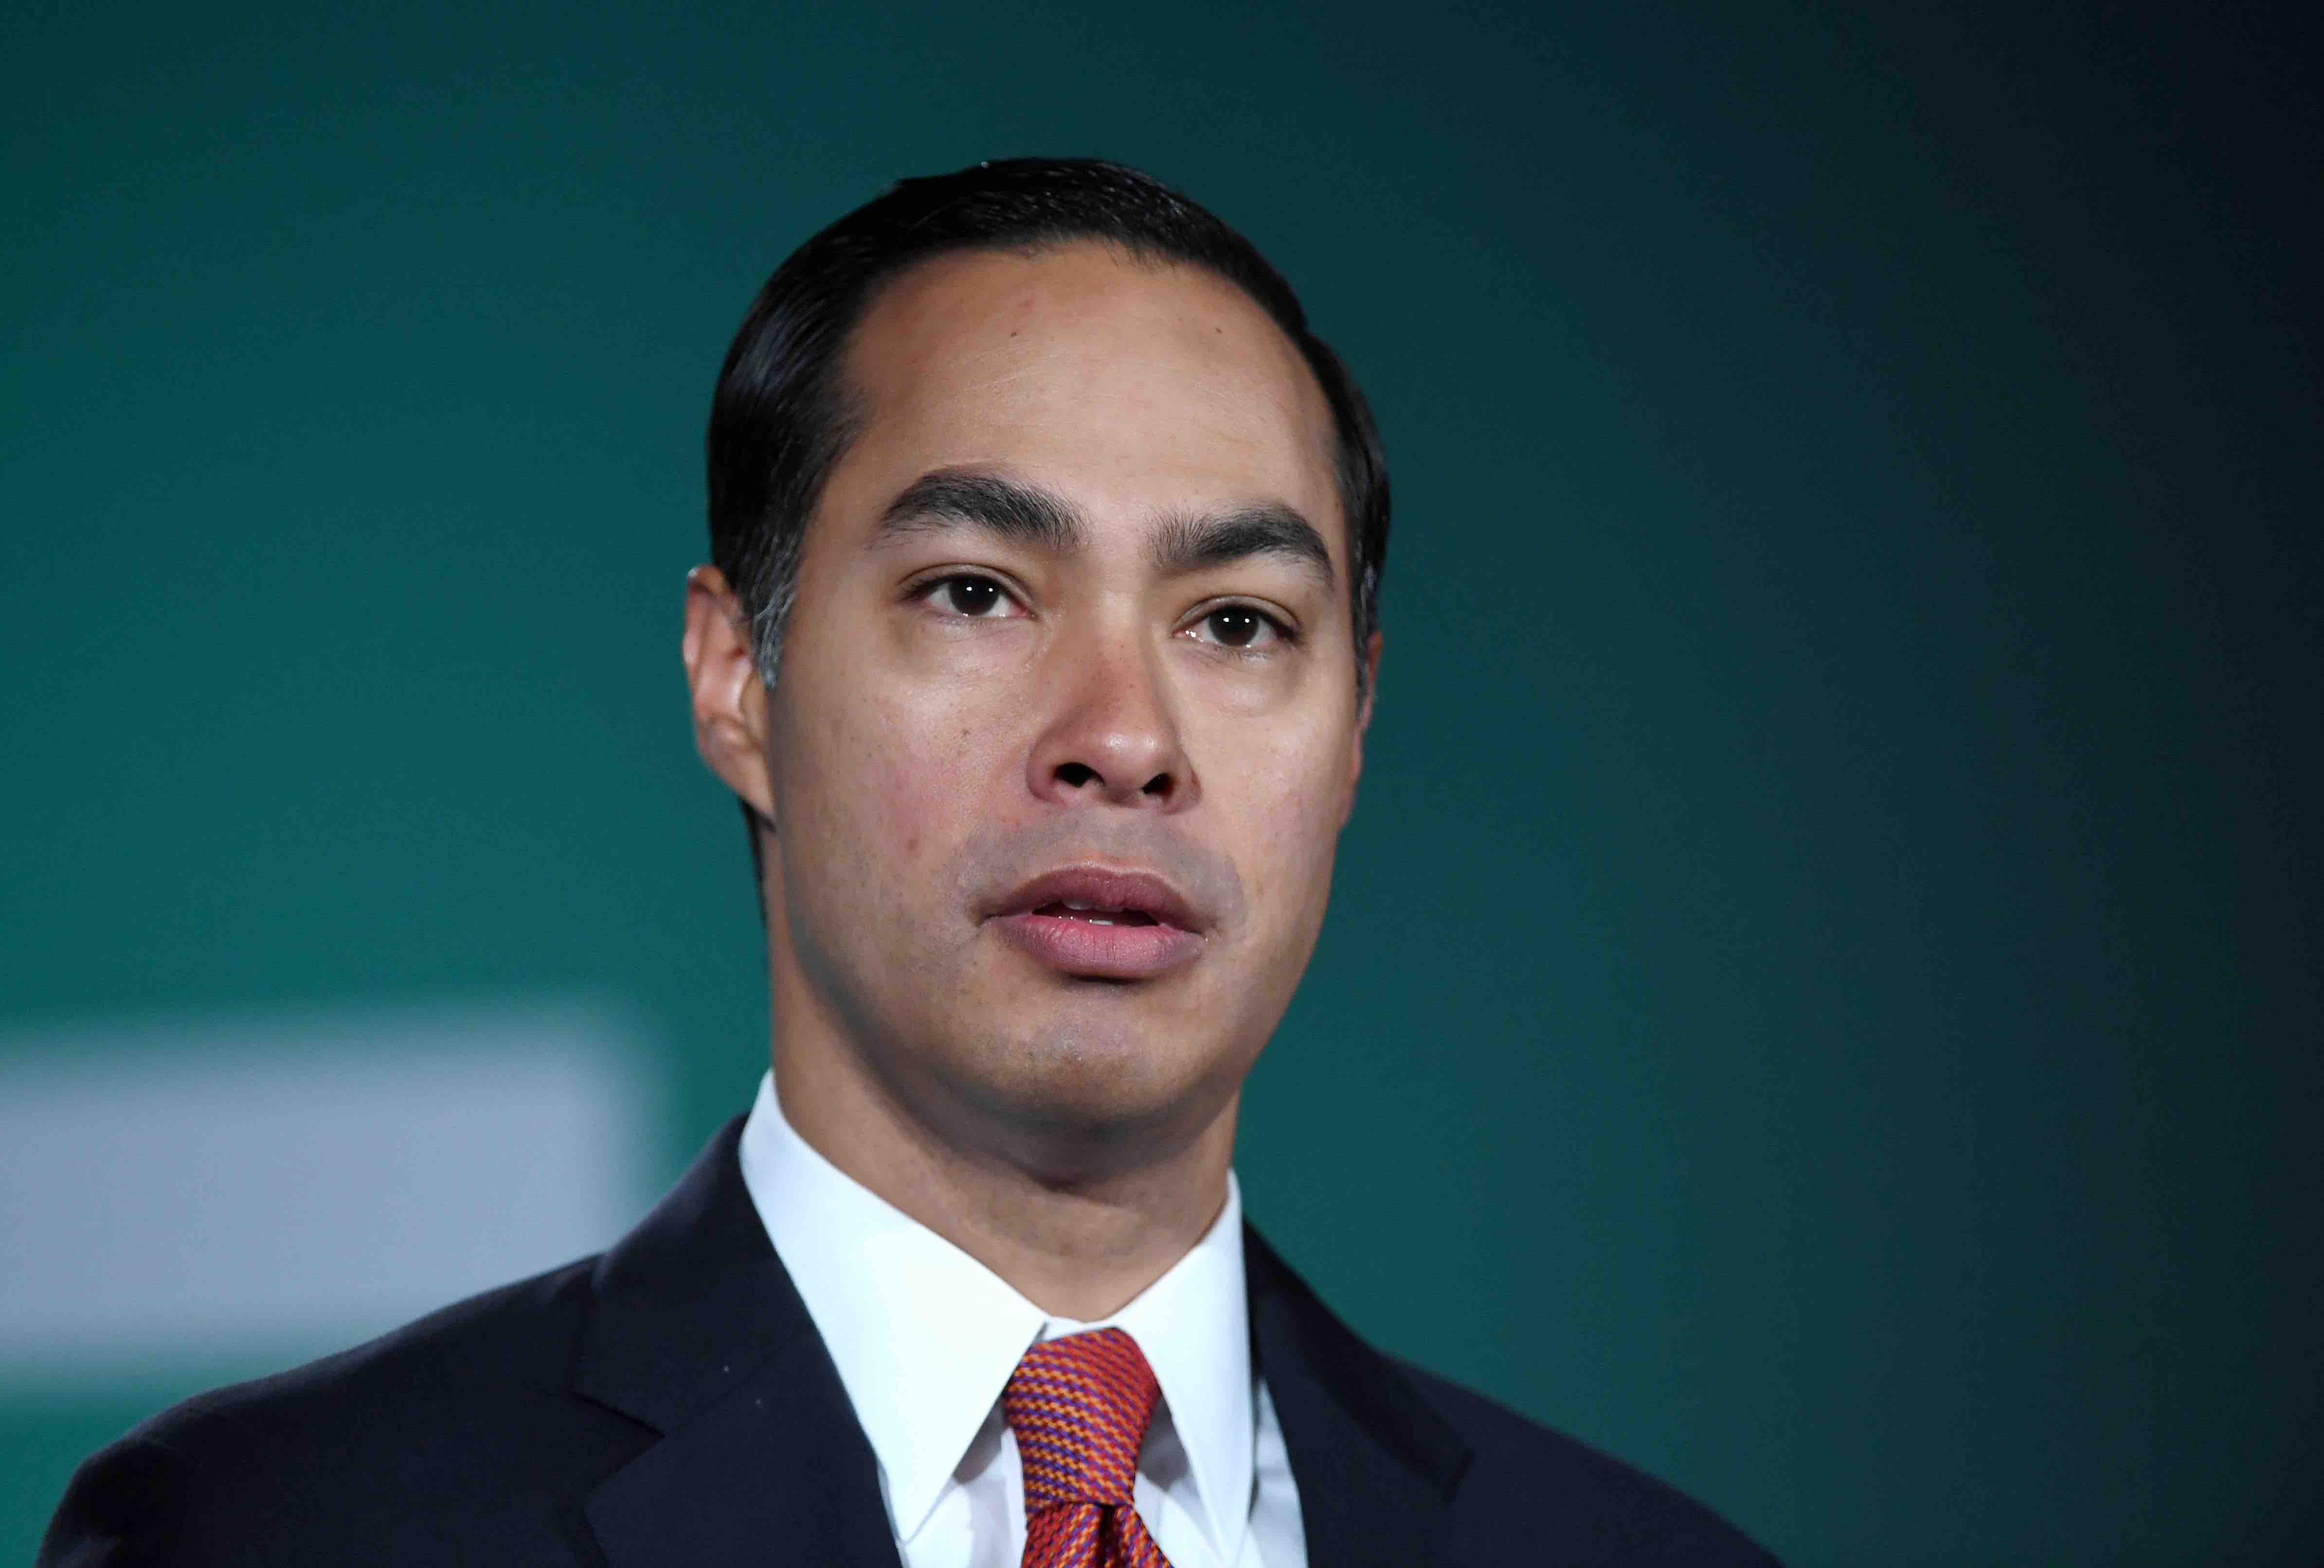 """In Powerful Ad, Julián Castro Tells Donald Trump That """"Words Have Consequences"""""""